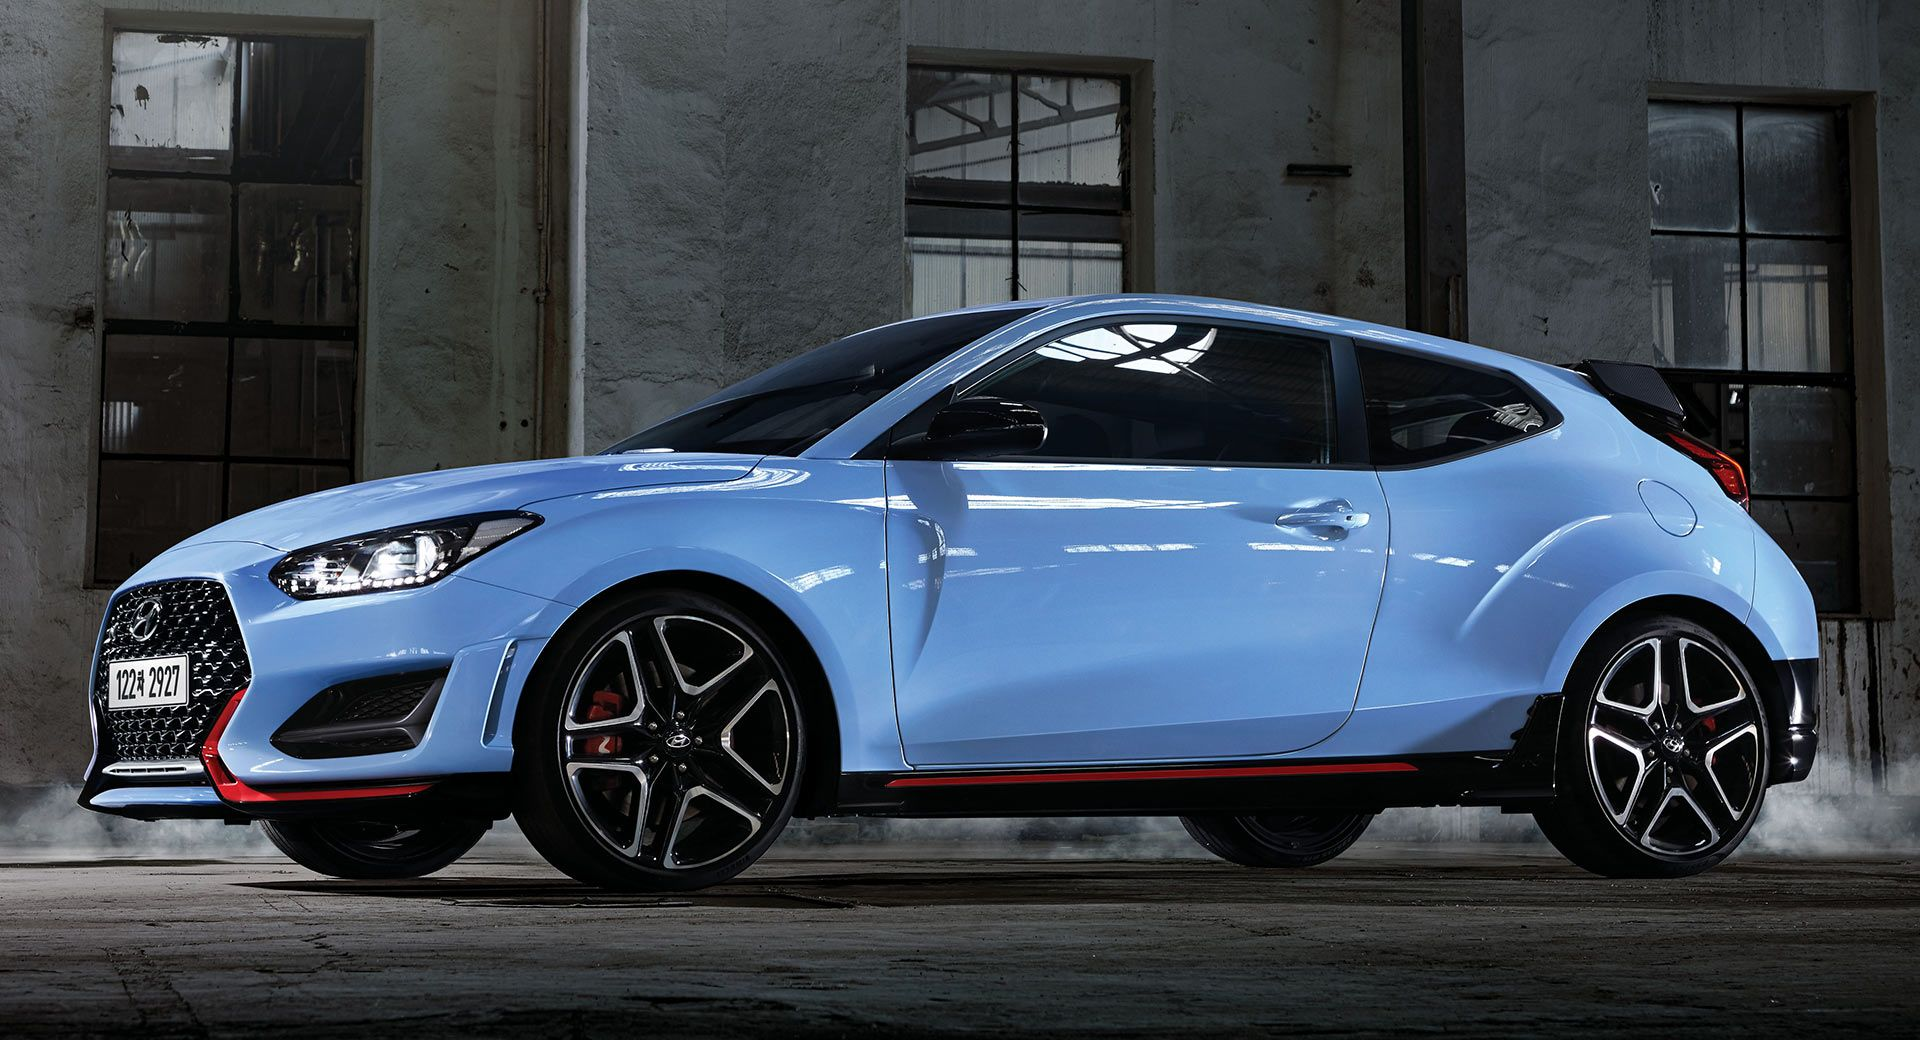 2020 Hyundai Veloster N Lands With Eight Speed Dct Hyundai Hyundain Hyundaiveloster Newcars Cars Carsof In 2020 Hyundai Veloster Hyundai Dual Clutch Transmission